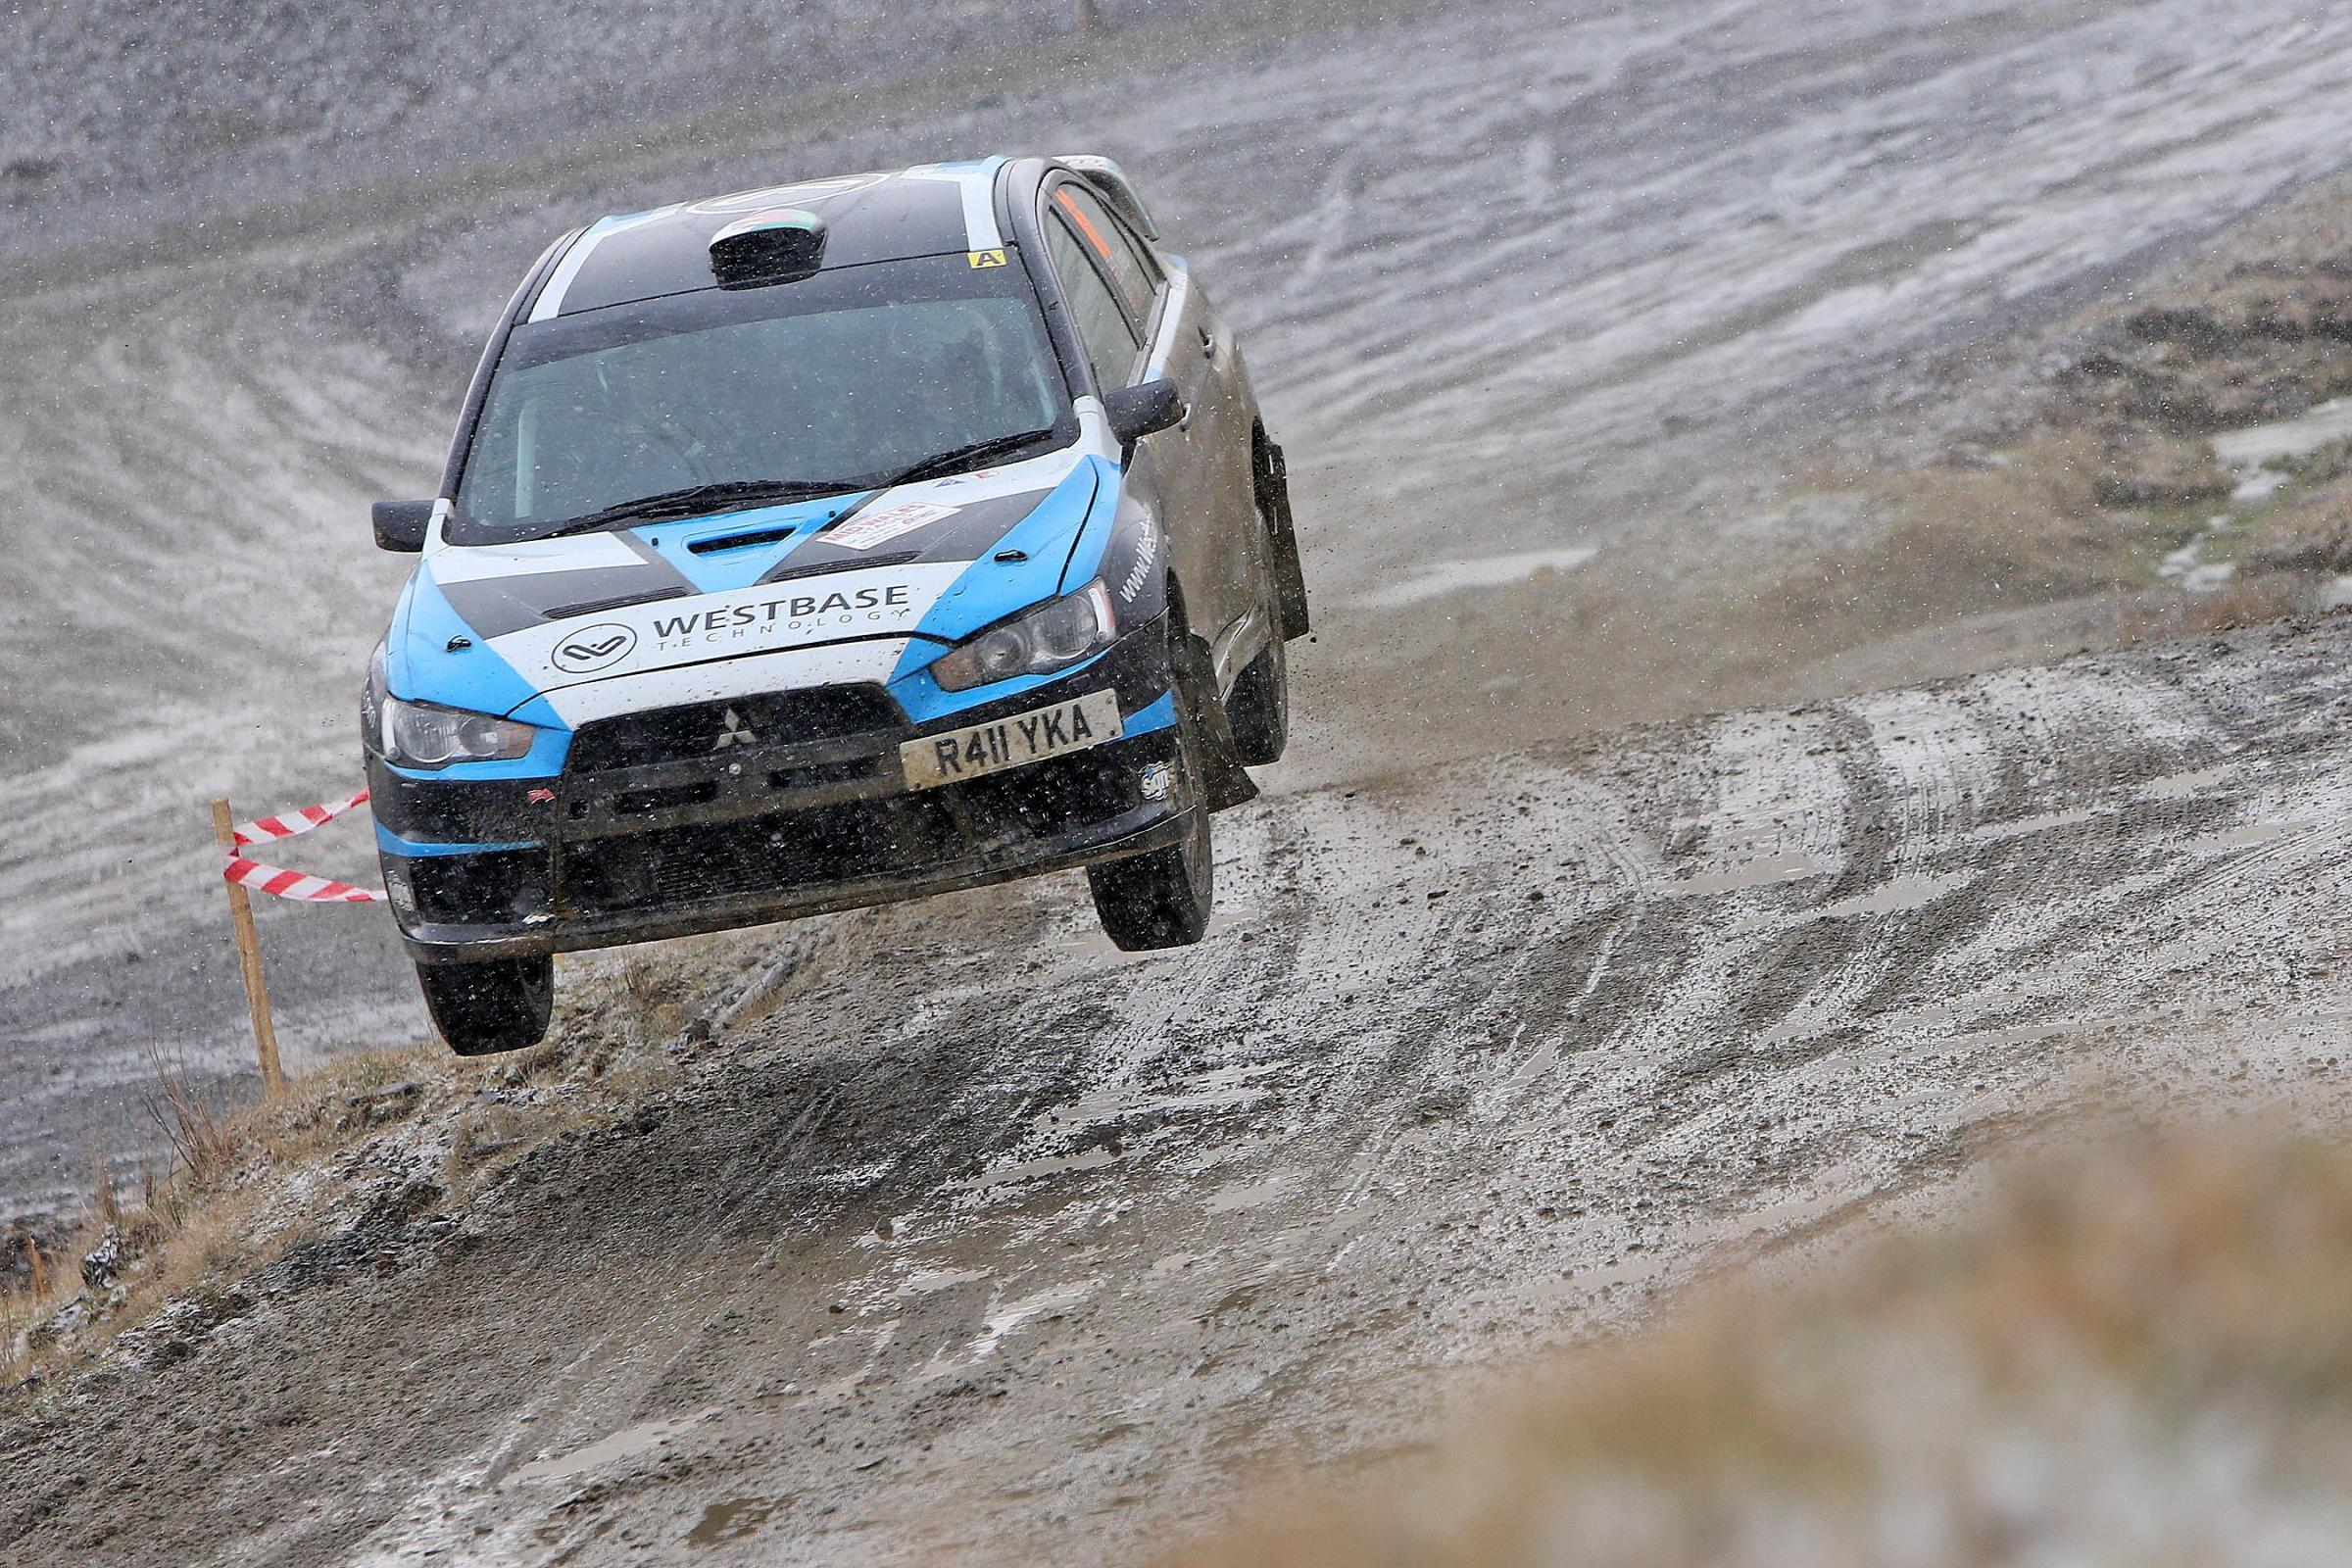 Action from the Mid Wales Rally Stages.